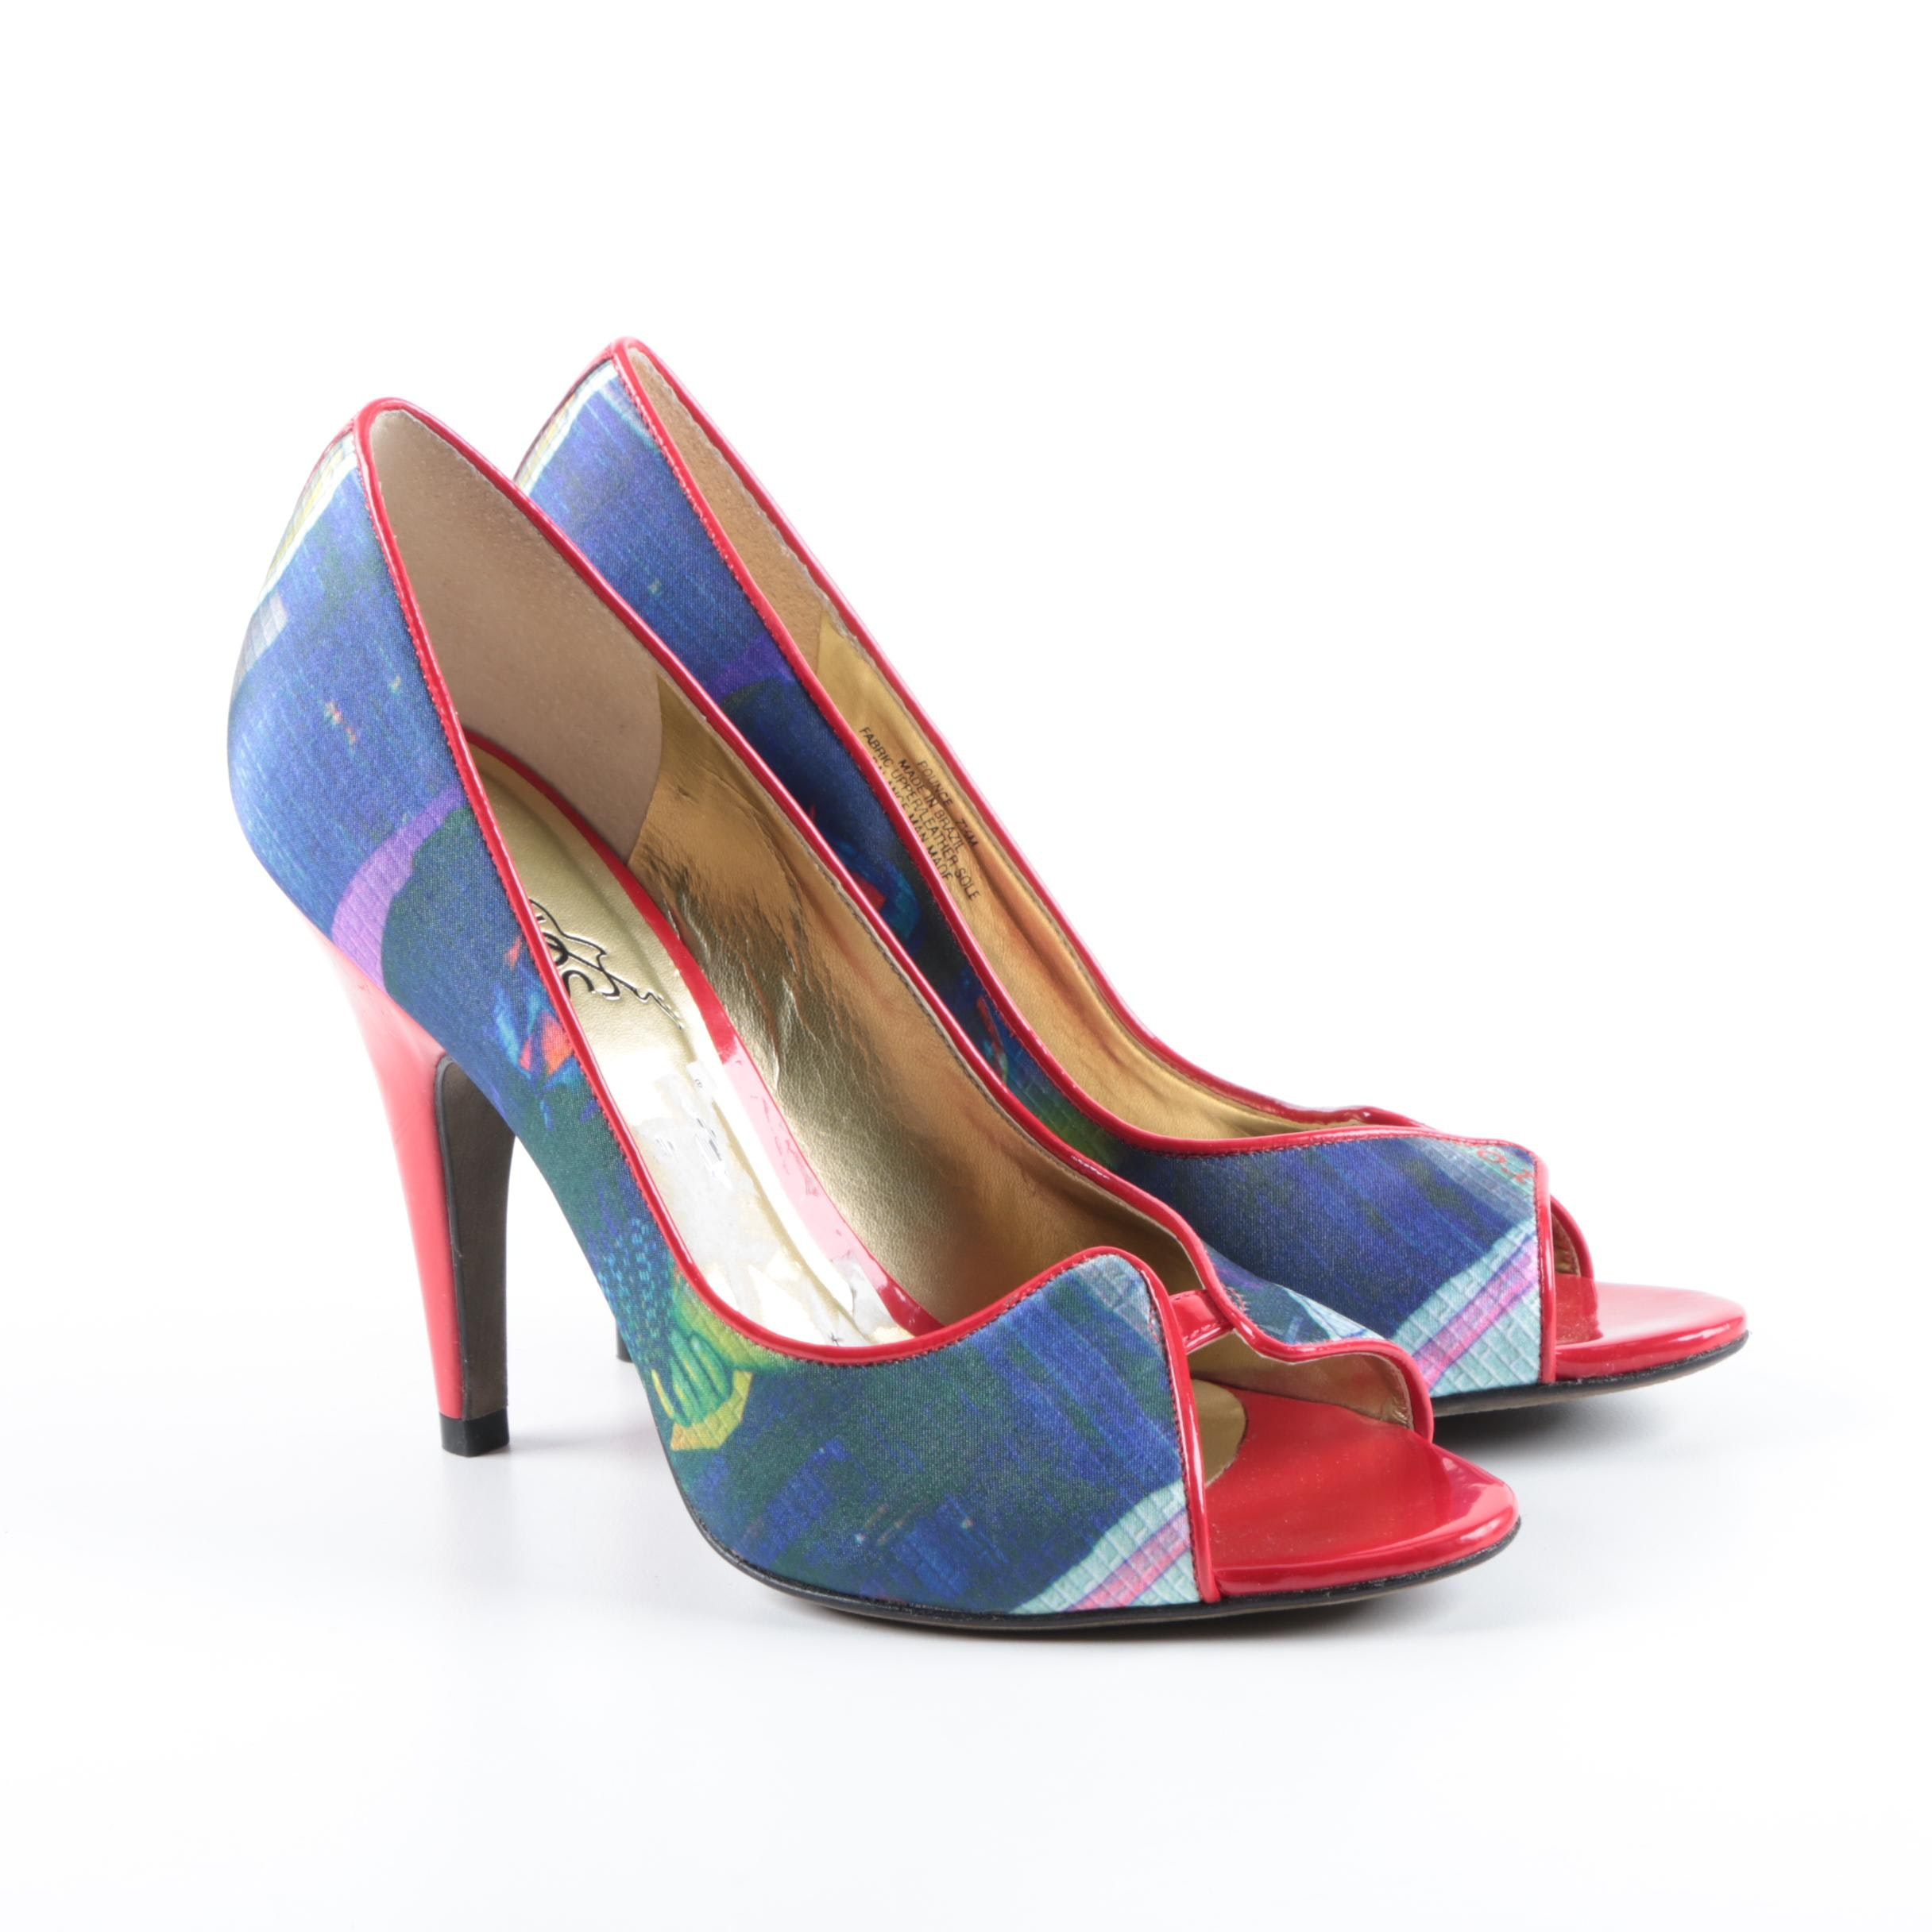 Carlos by Carlos Santana Multicolored Peep Toe Pumps